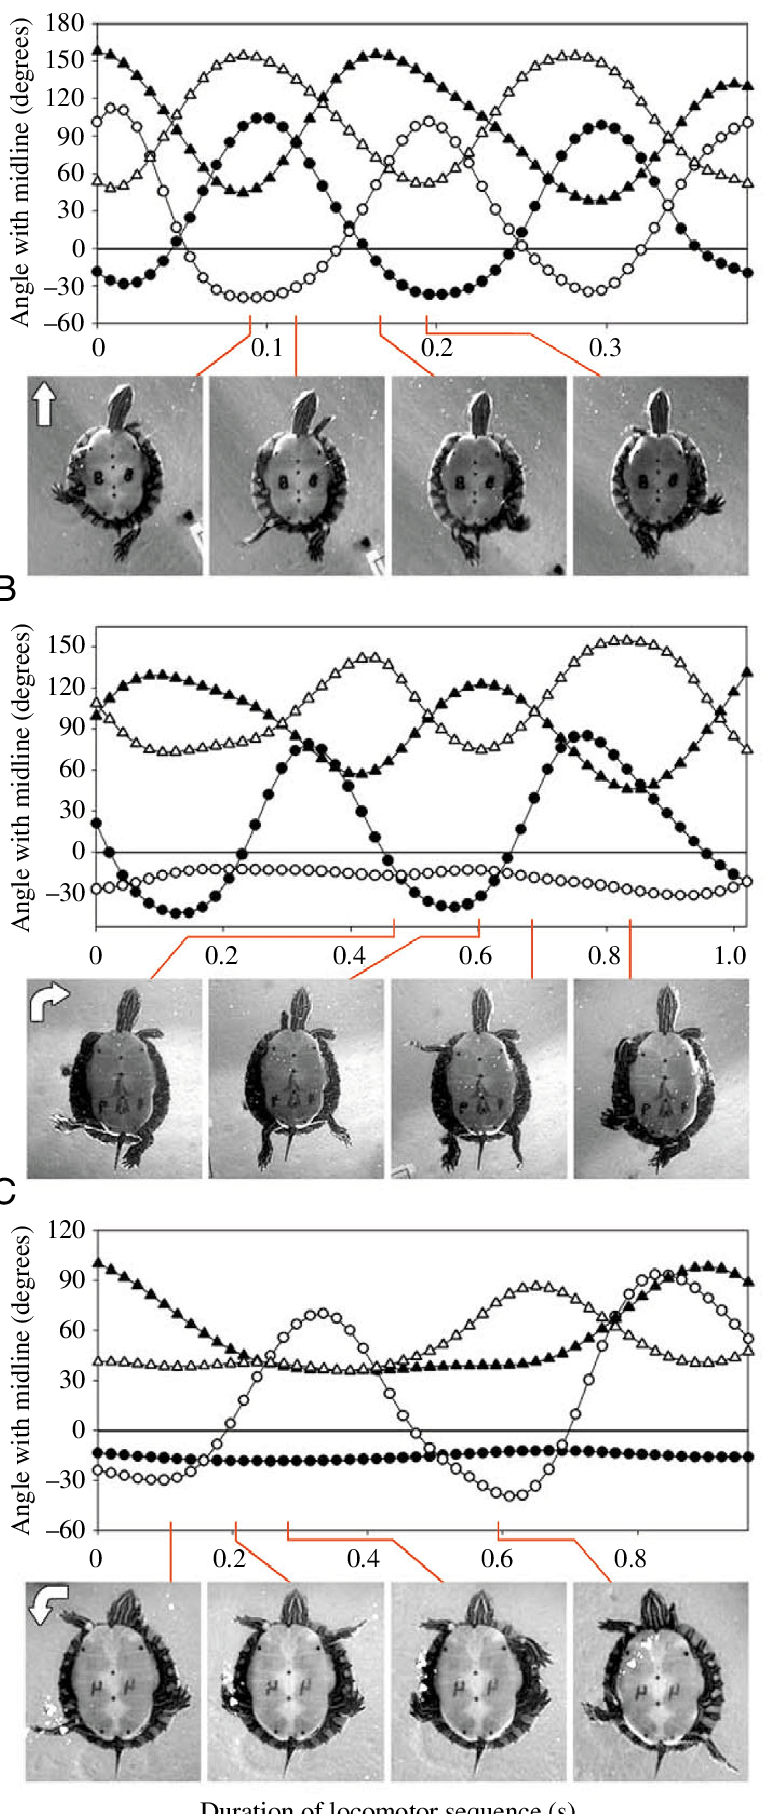 hight resolution of representative kinematic profiles for three modes of swimming performed by painted turtles with still images